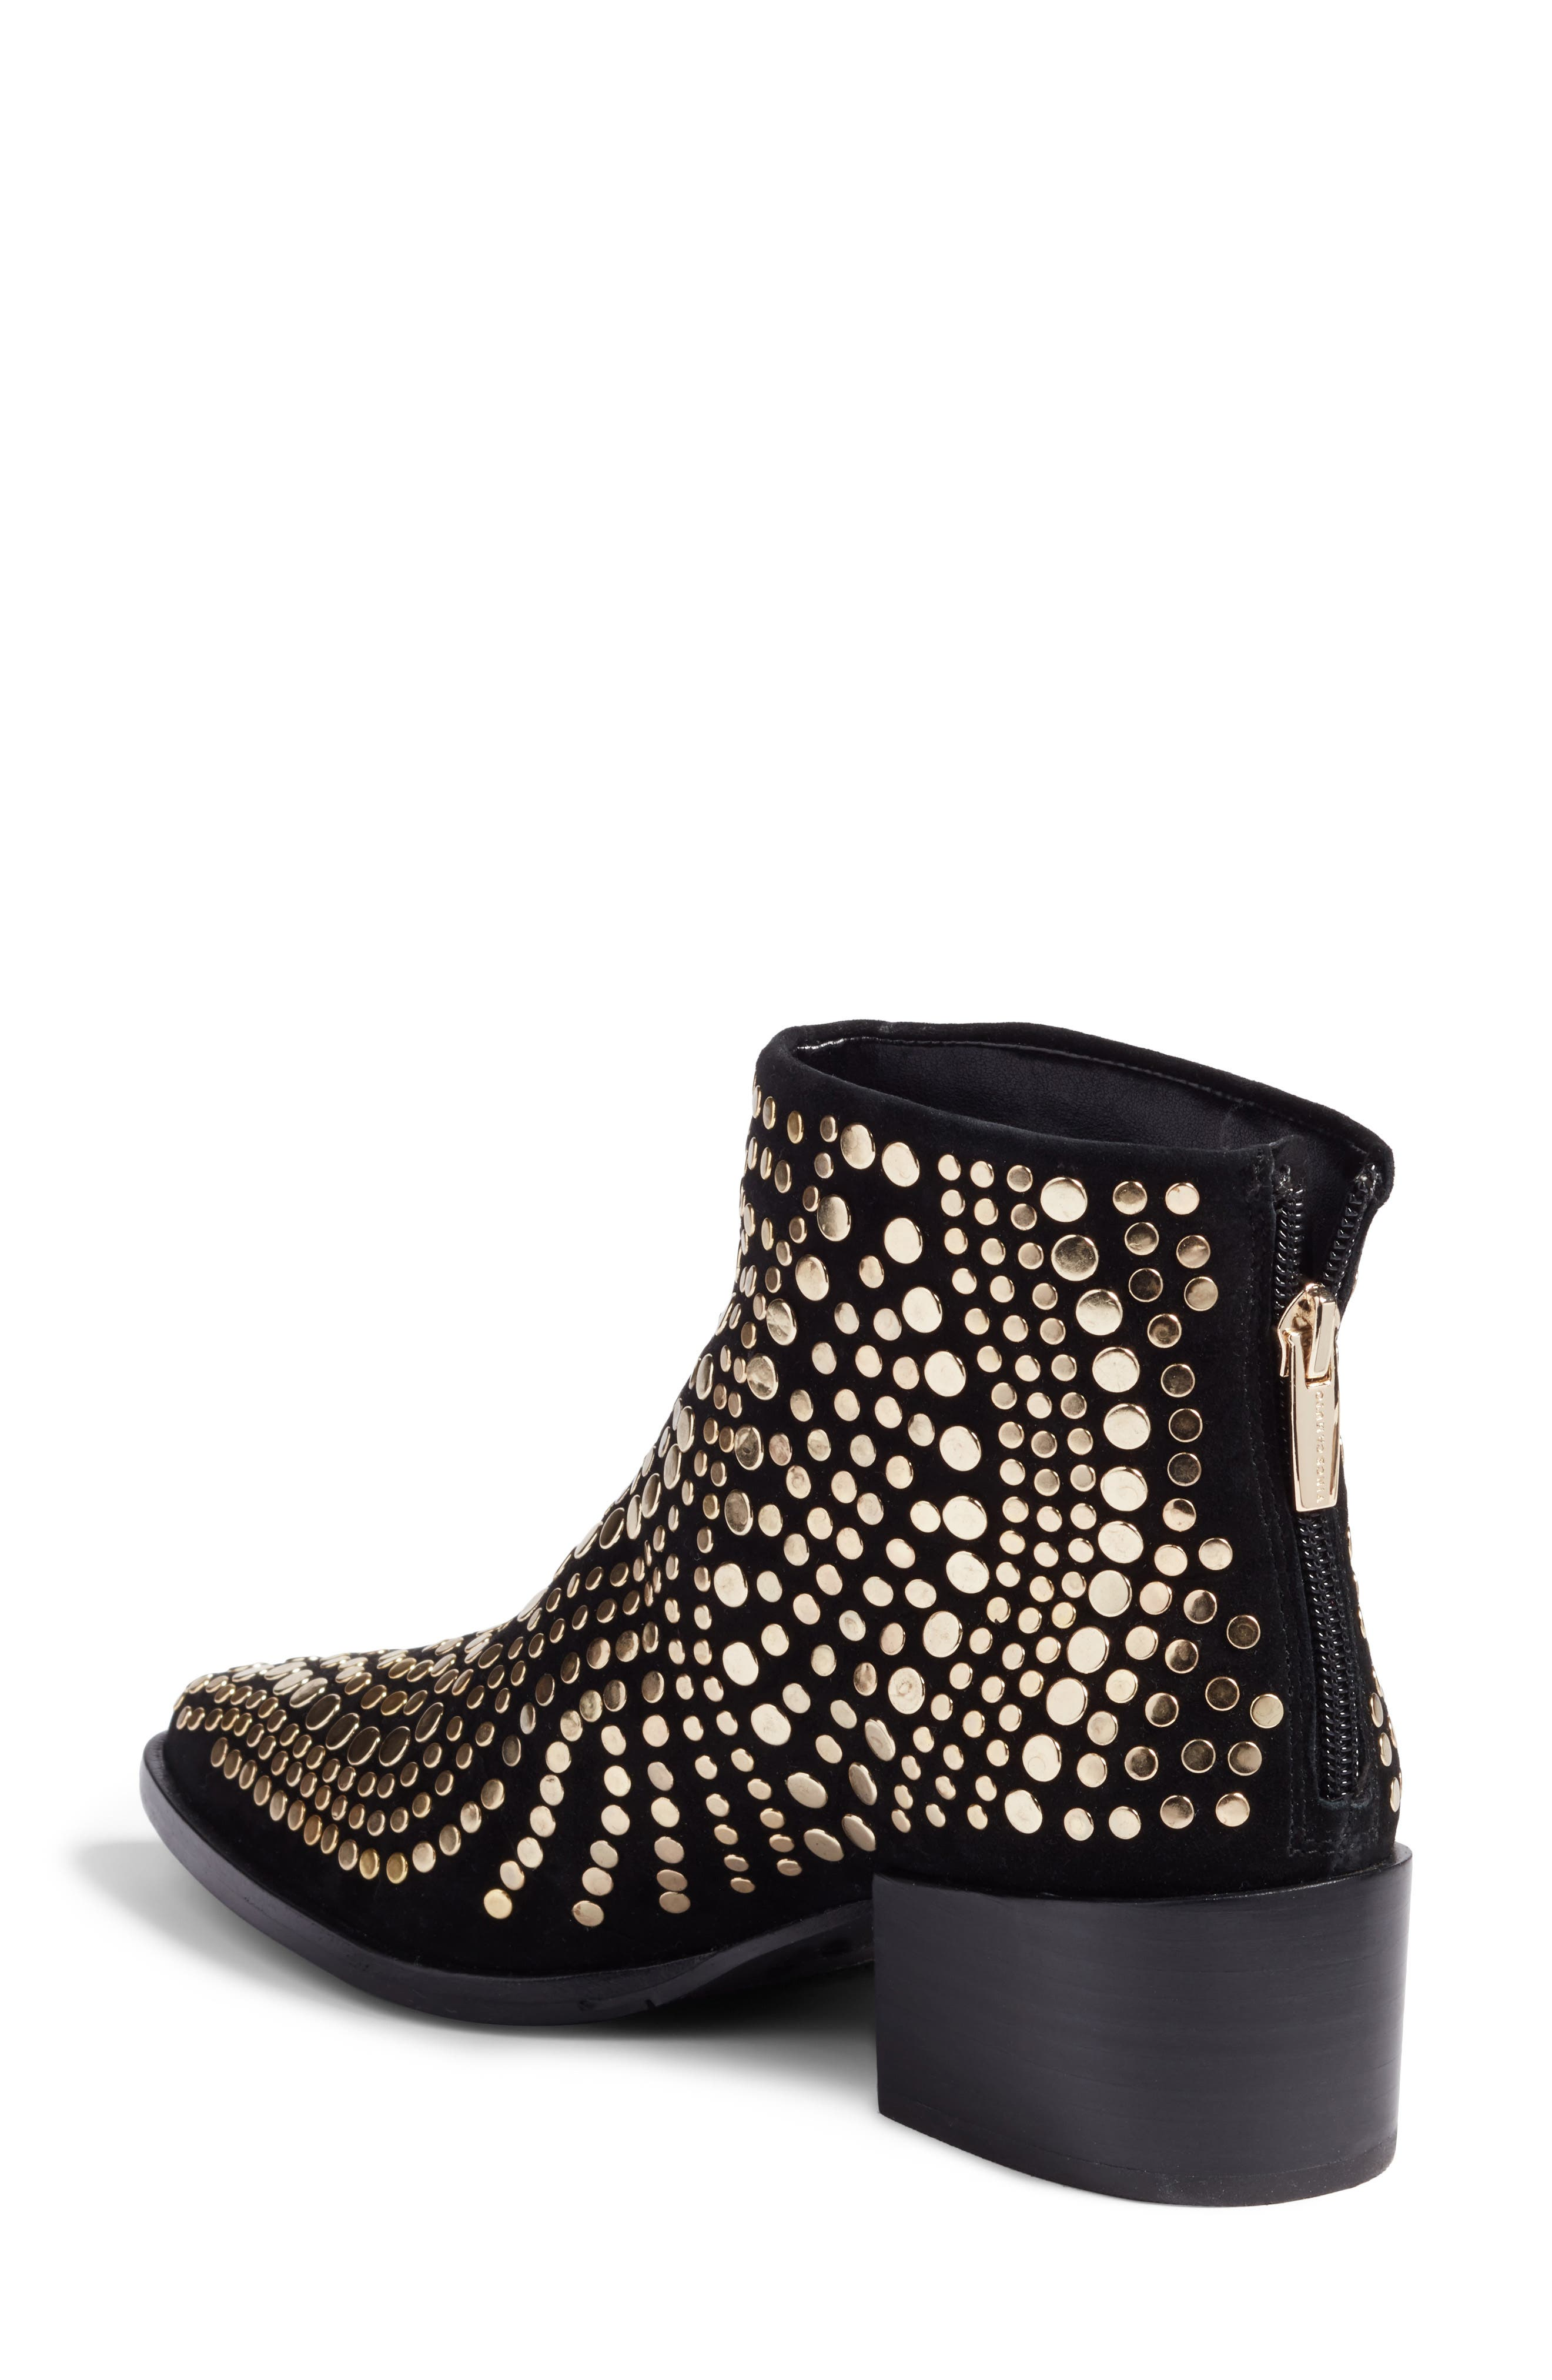 Edenny Studded Pointy Toe Bootie,                             Alternate thumbnail 3, color,                             Black Suede